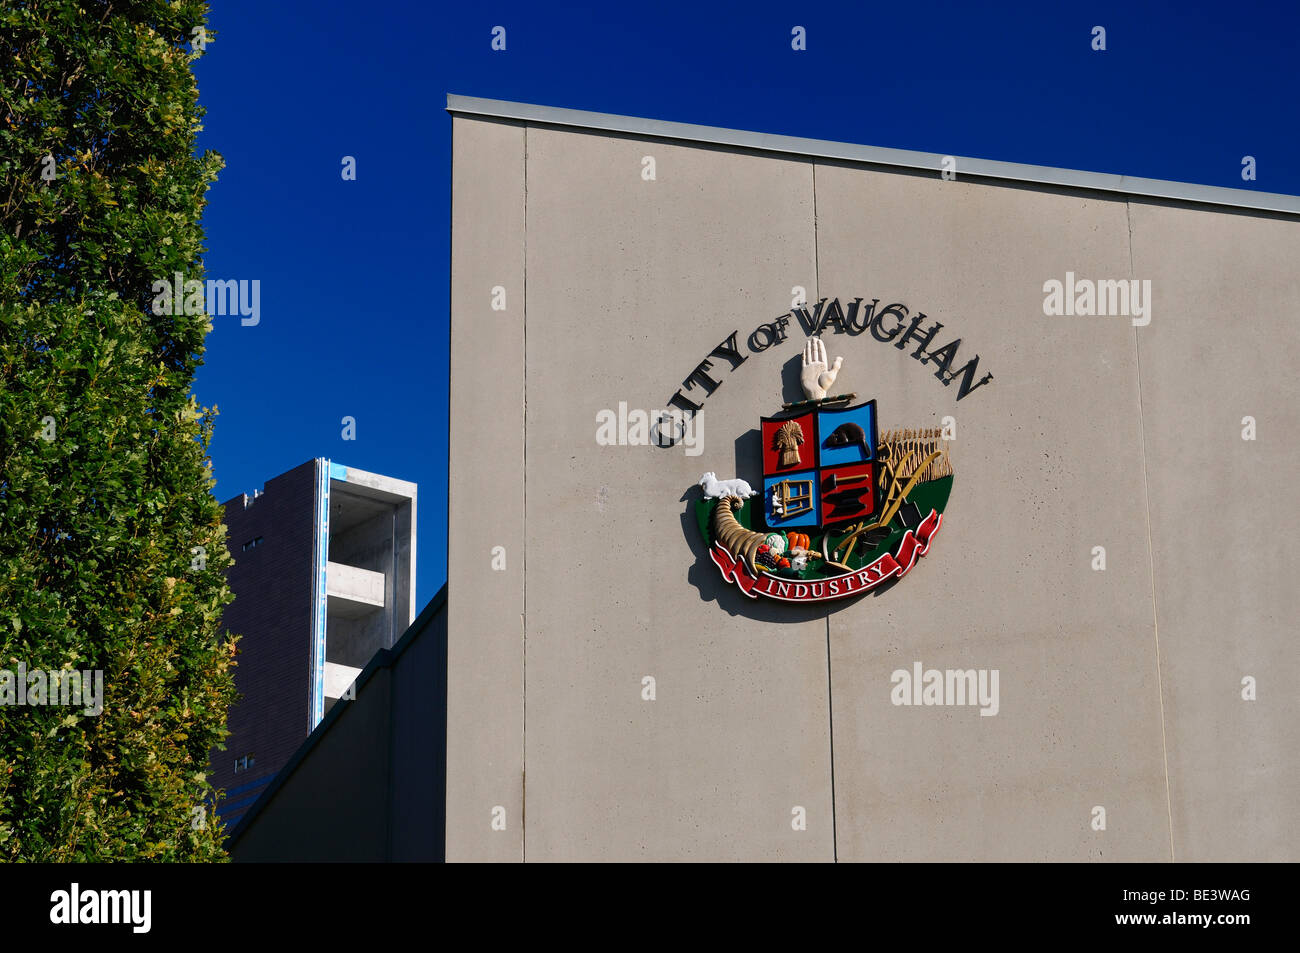 The Corporate Seal of the City of Vaughan at the old City Hall with new bulding construction - Stock Image